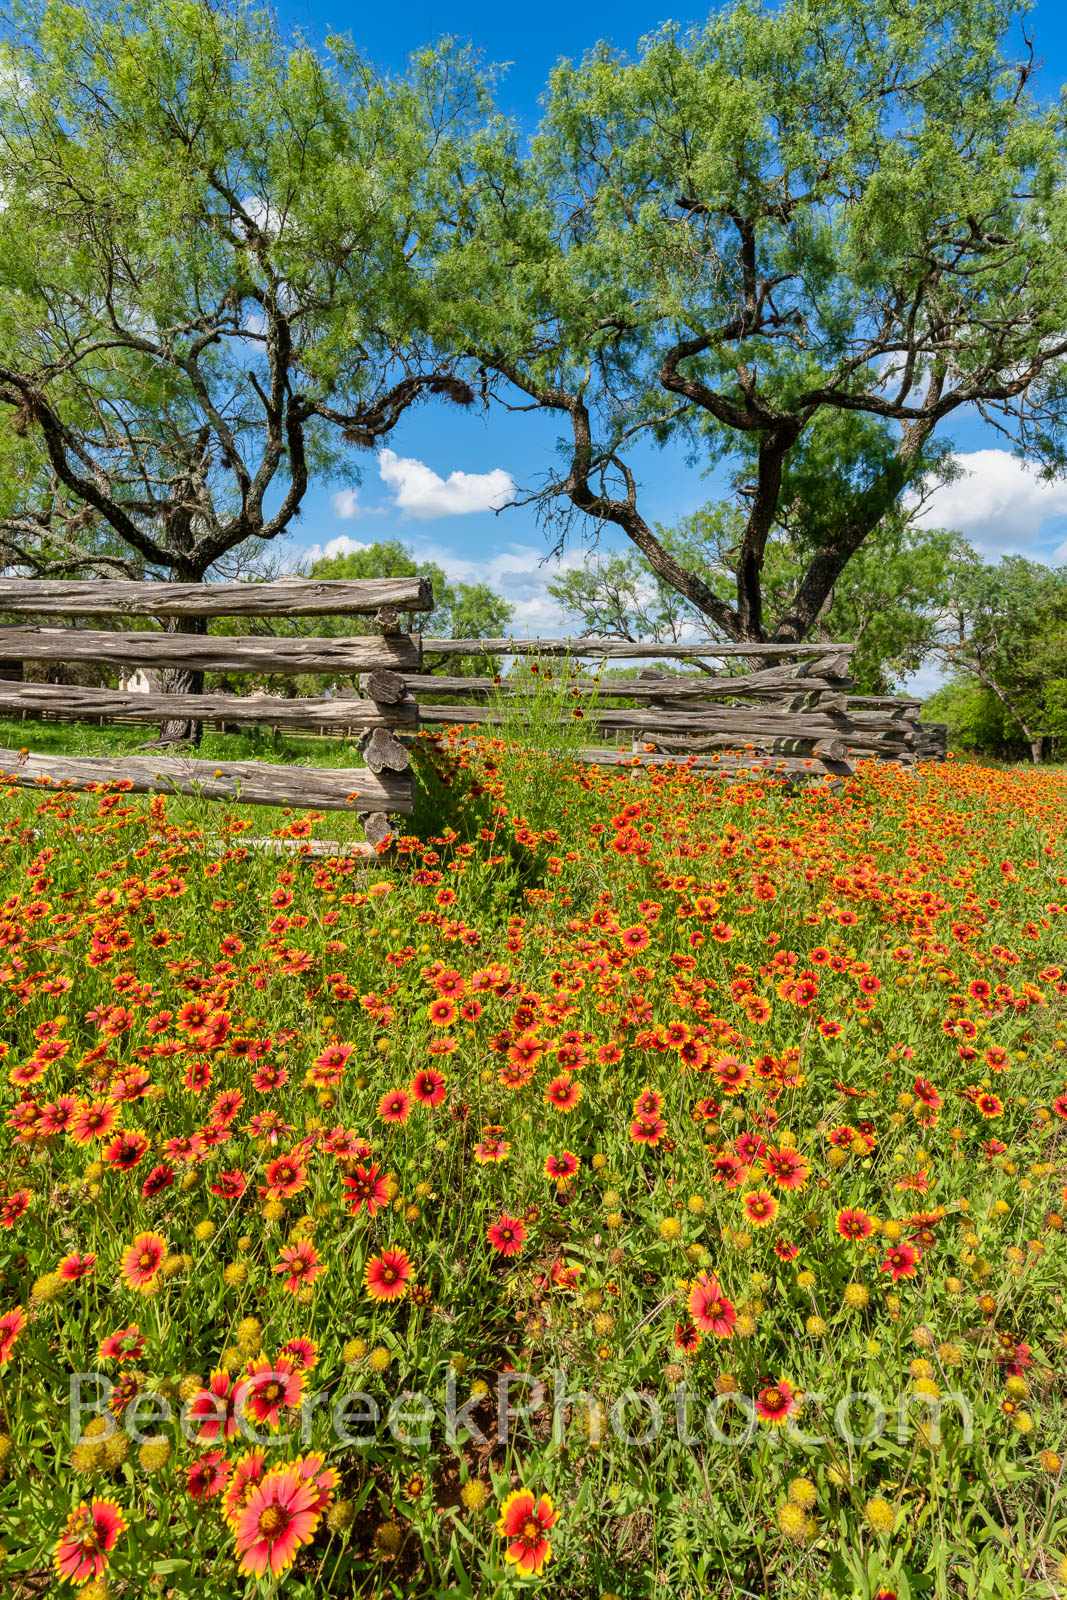 Texas Indian Blankets Along the Fence Vertical - We came across these wonderful firewheel wildflowers, also called indian blankets...